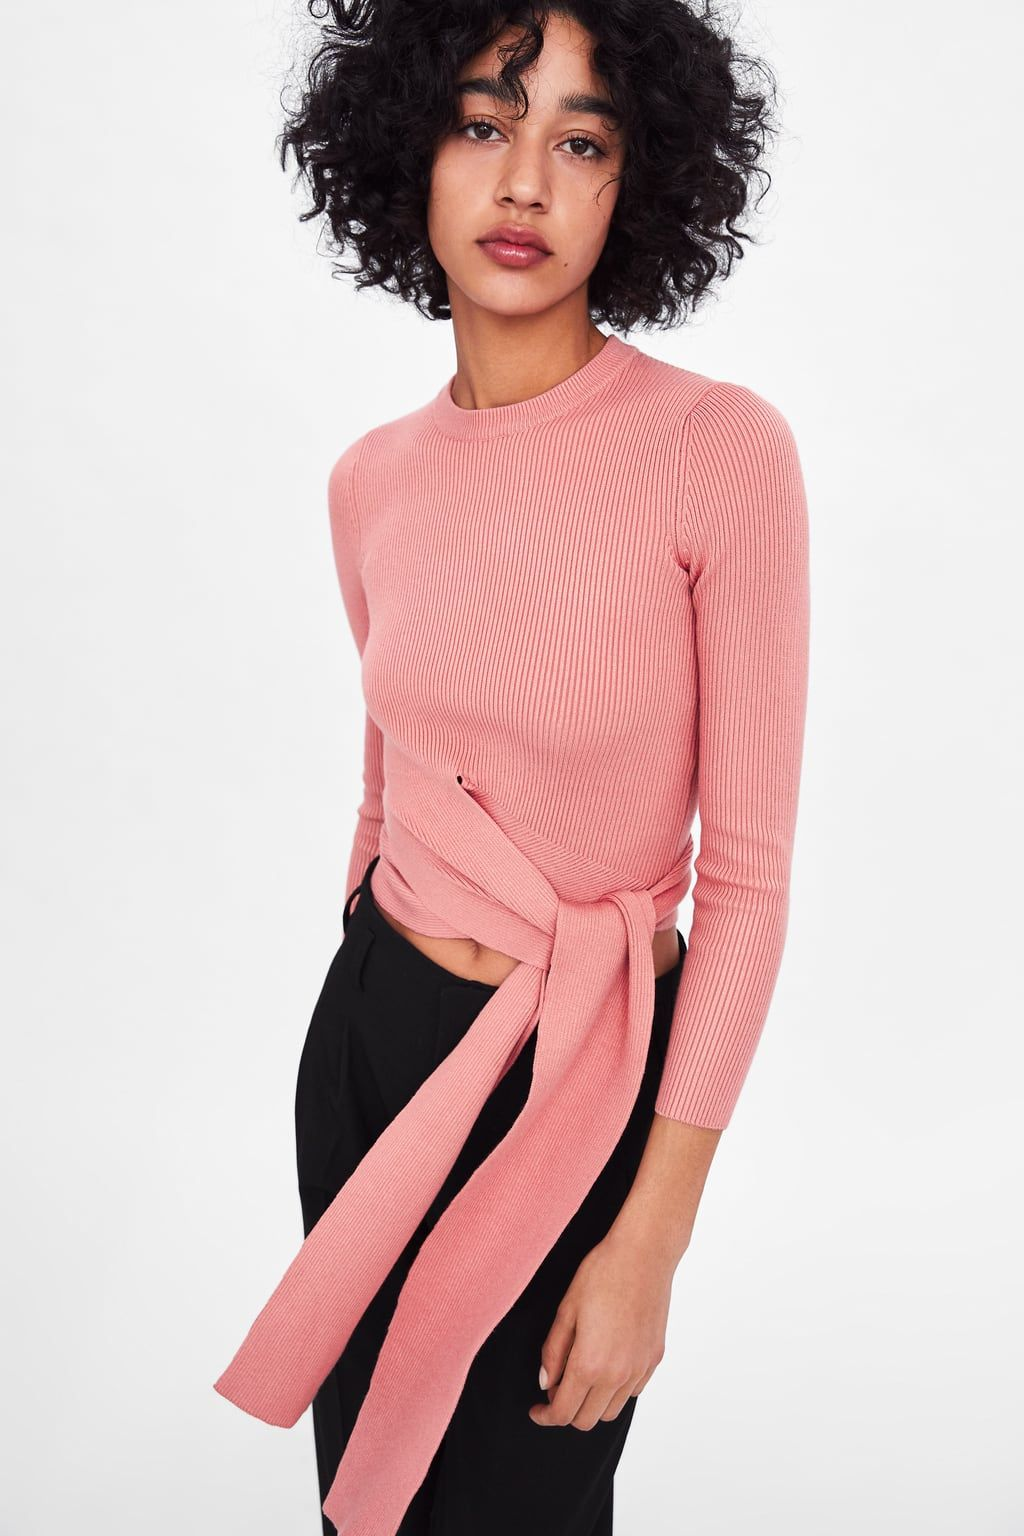 57712c76 Sweater with tie at waist in 2019 | The Best of Zara | Fashion ...